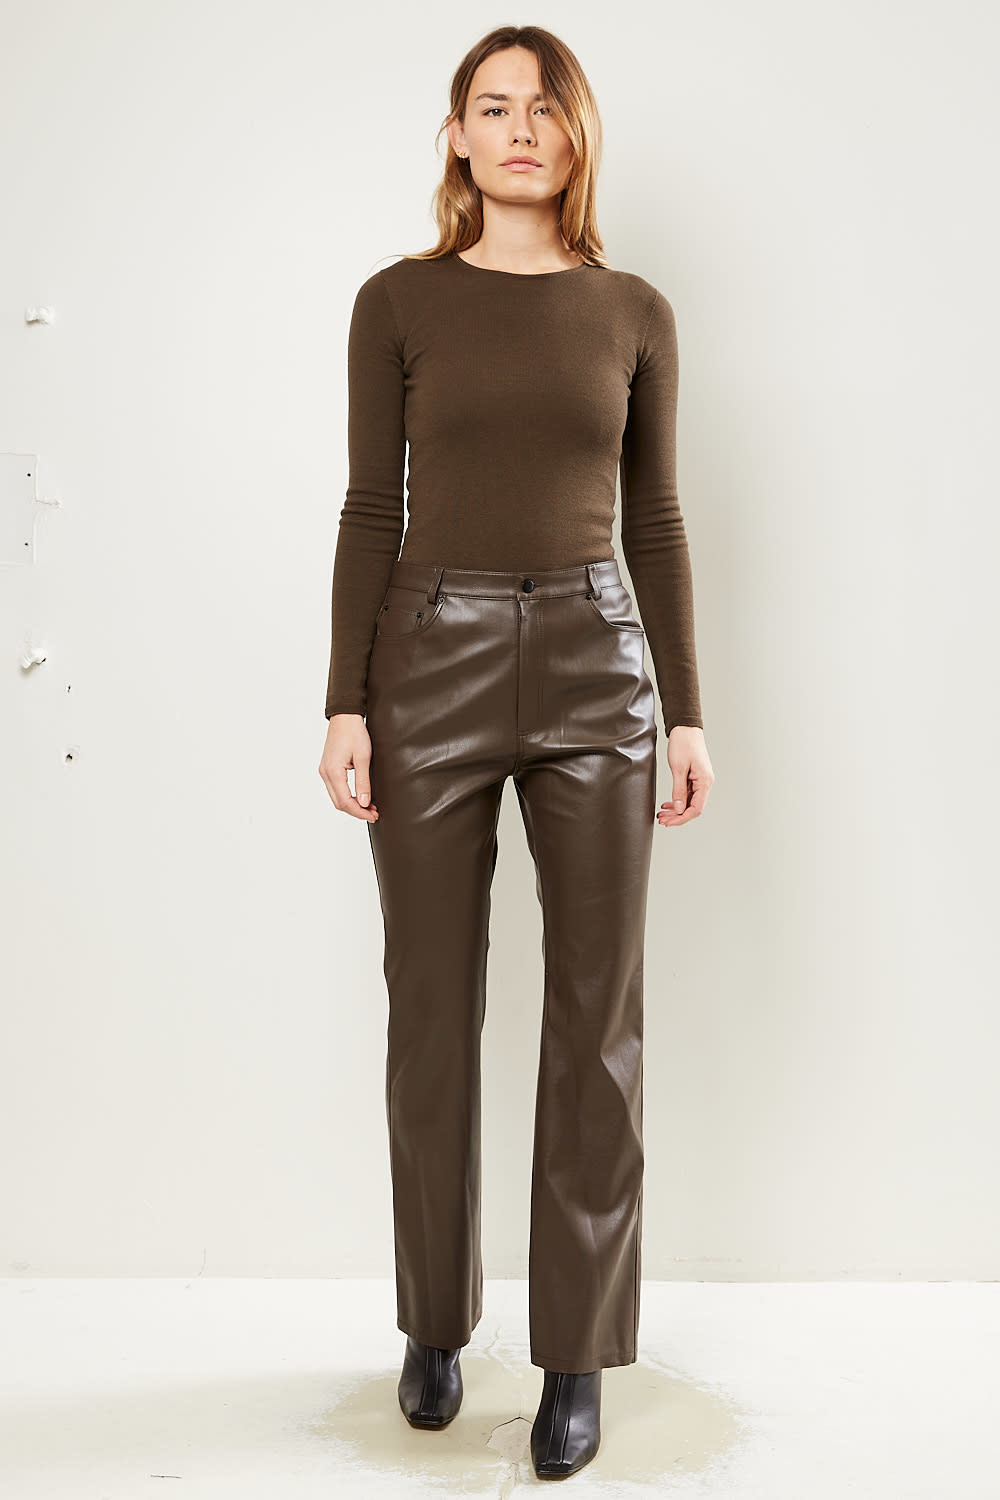 Drae - Faux leather bootcut pants